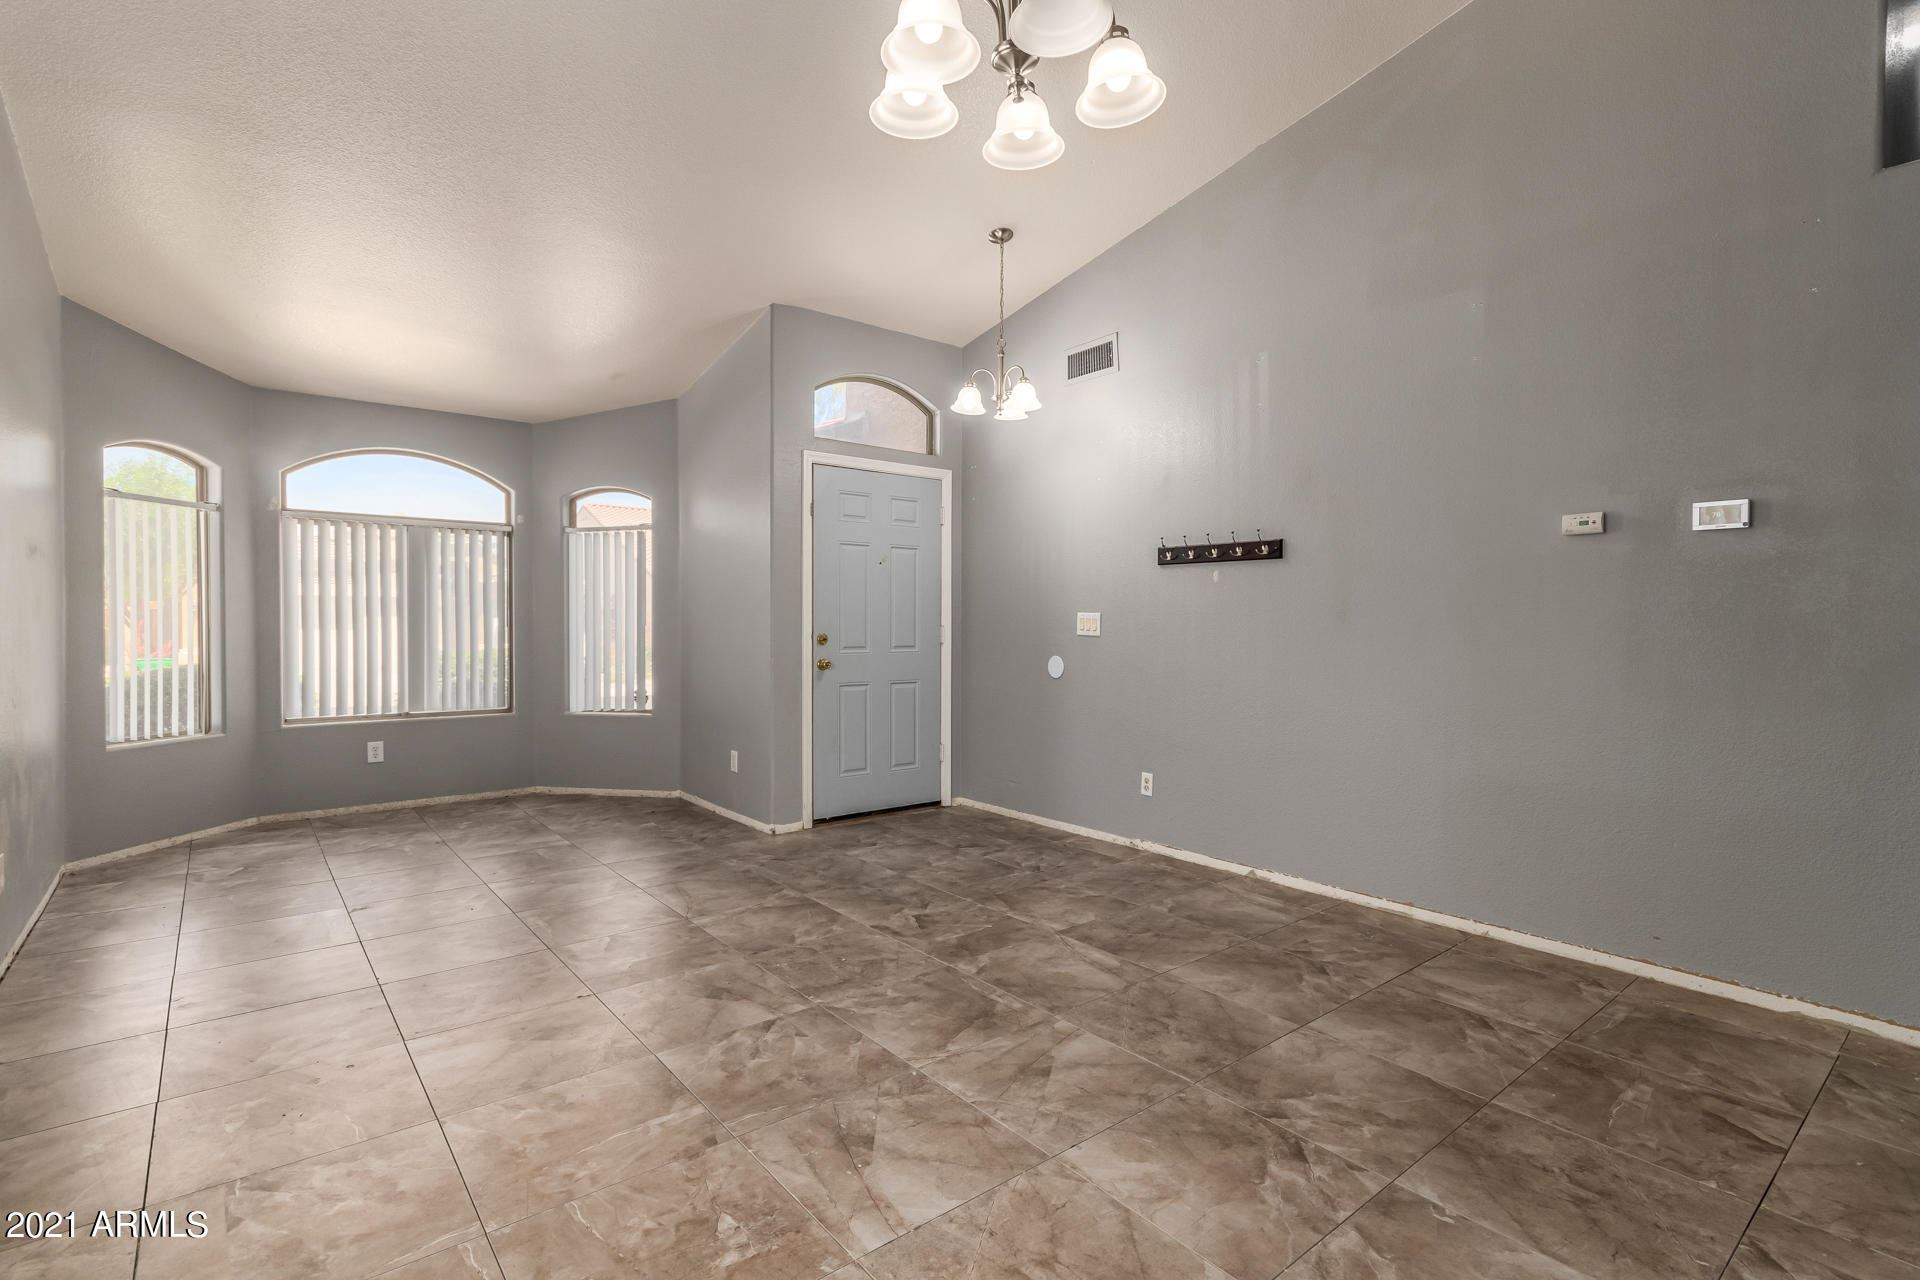 Photo of 12429 W DENTON Avenue, Litchfield Park, AZ 85340 (MLS # 6229362)